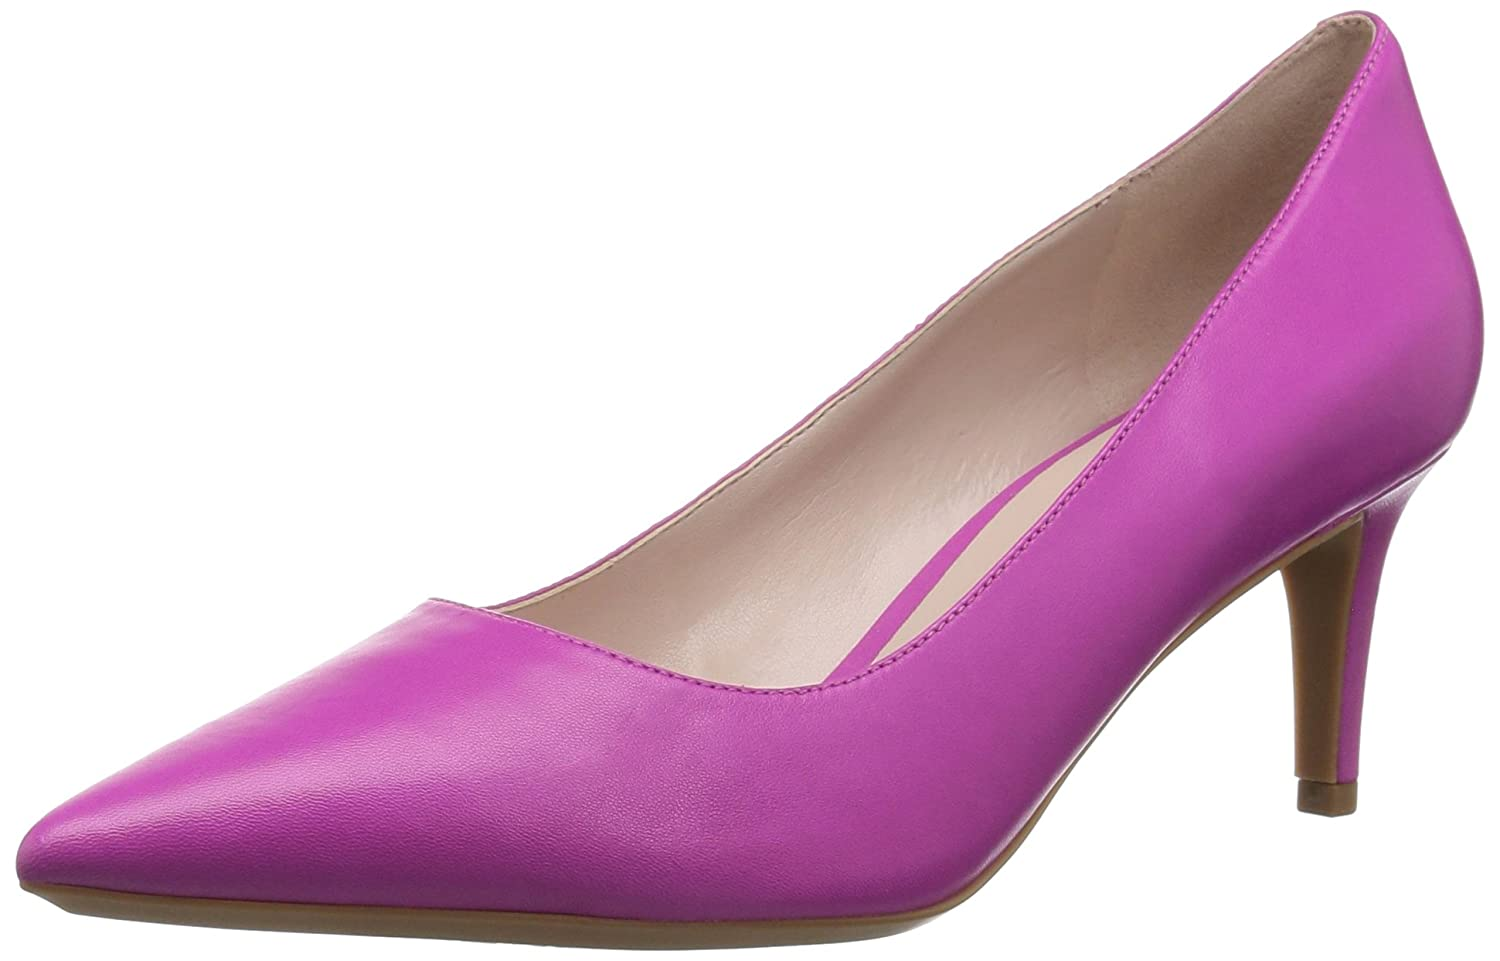 Nine West Women's SOHO9X9 Leather Pump B076FCYDKT 9.5 B(M) US|Pink